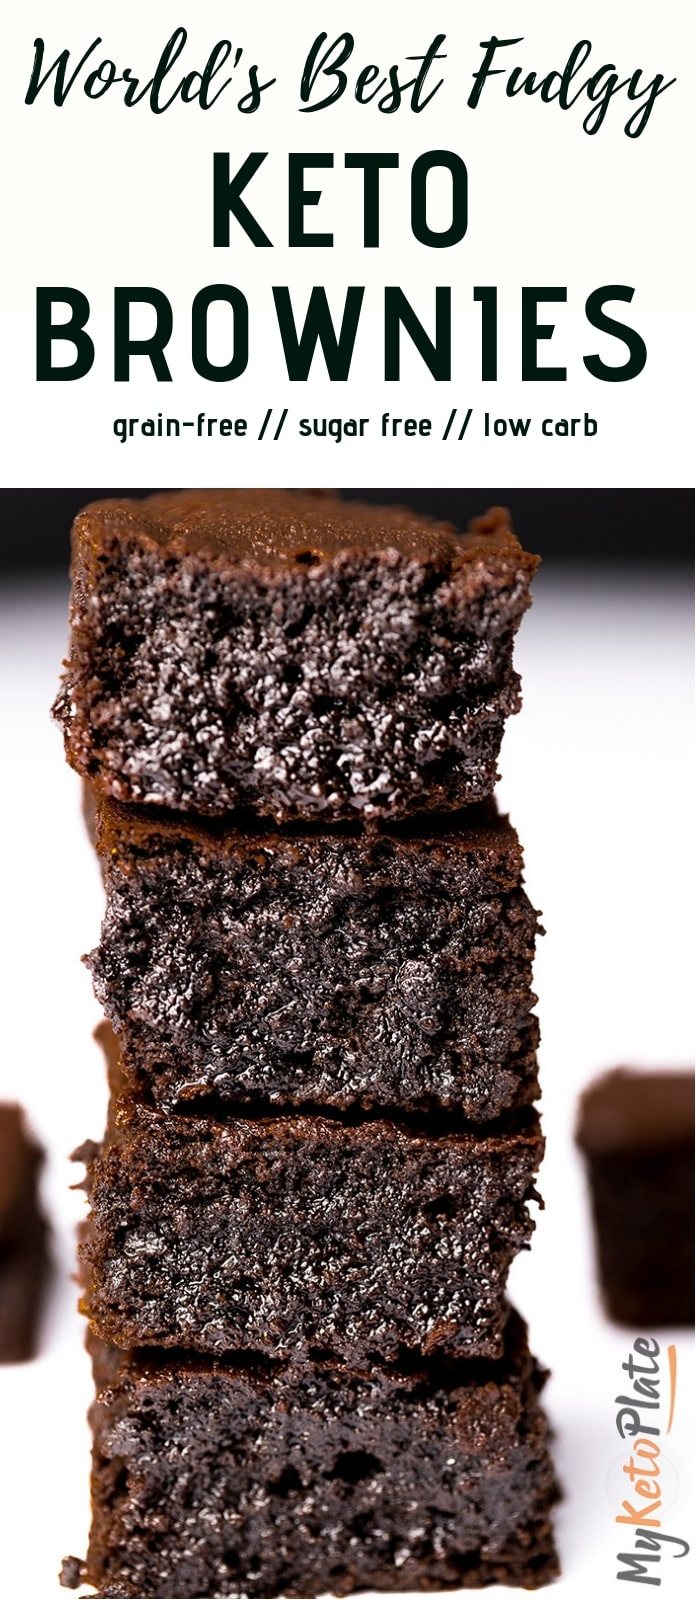 These keto brownies are super moist, fudgy, perfectly rich and chocolatey. Make the world's best brownie recipe and enjoy an incredibly sugar-free 6 ingredients dessert with only 1g net carb per serving! Recipe via @myketoplate | www.myketoplate.com